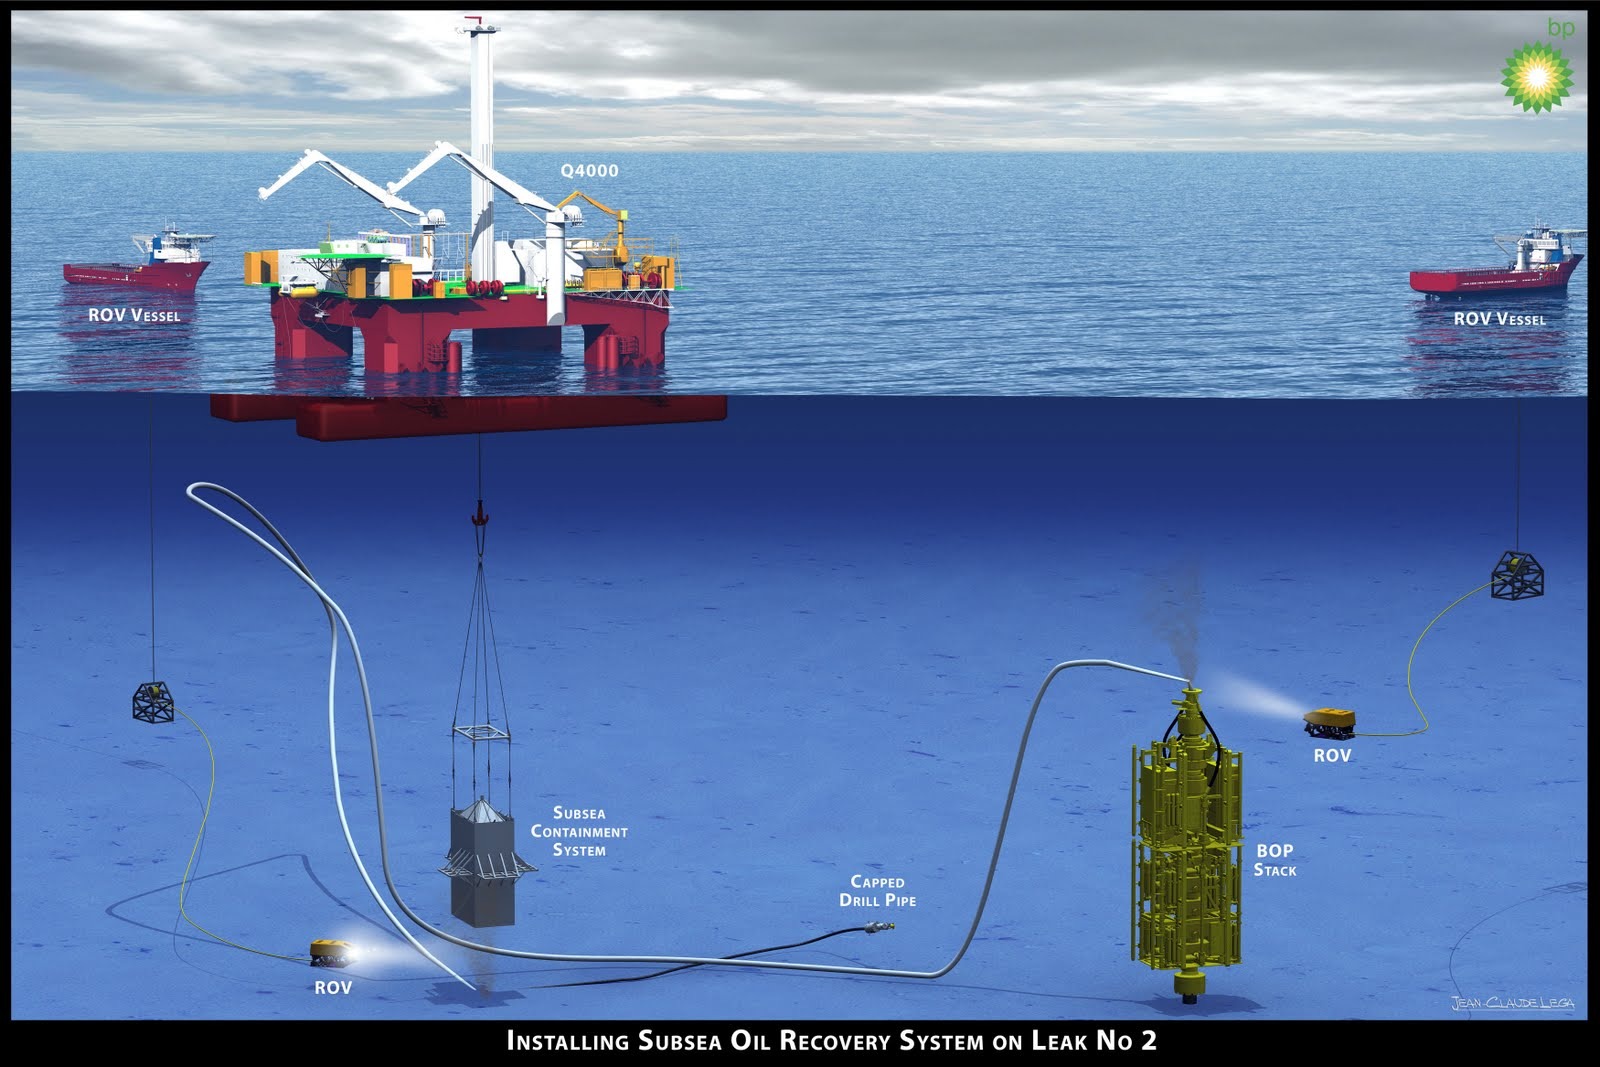 Oil Rig Diagram Wiring For A Three Way Switch With Multiple Lights Do You Think 9 11 Was Conspiracy Girlsaskguys